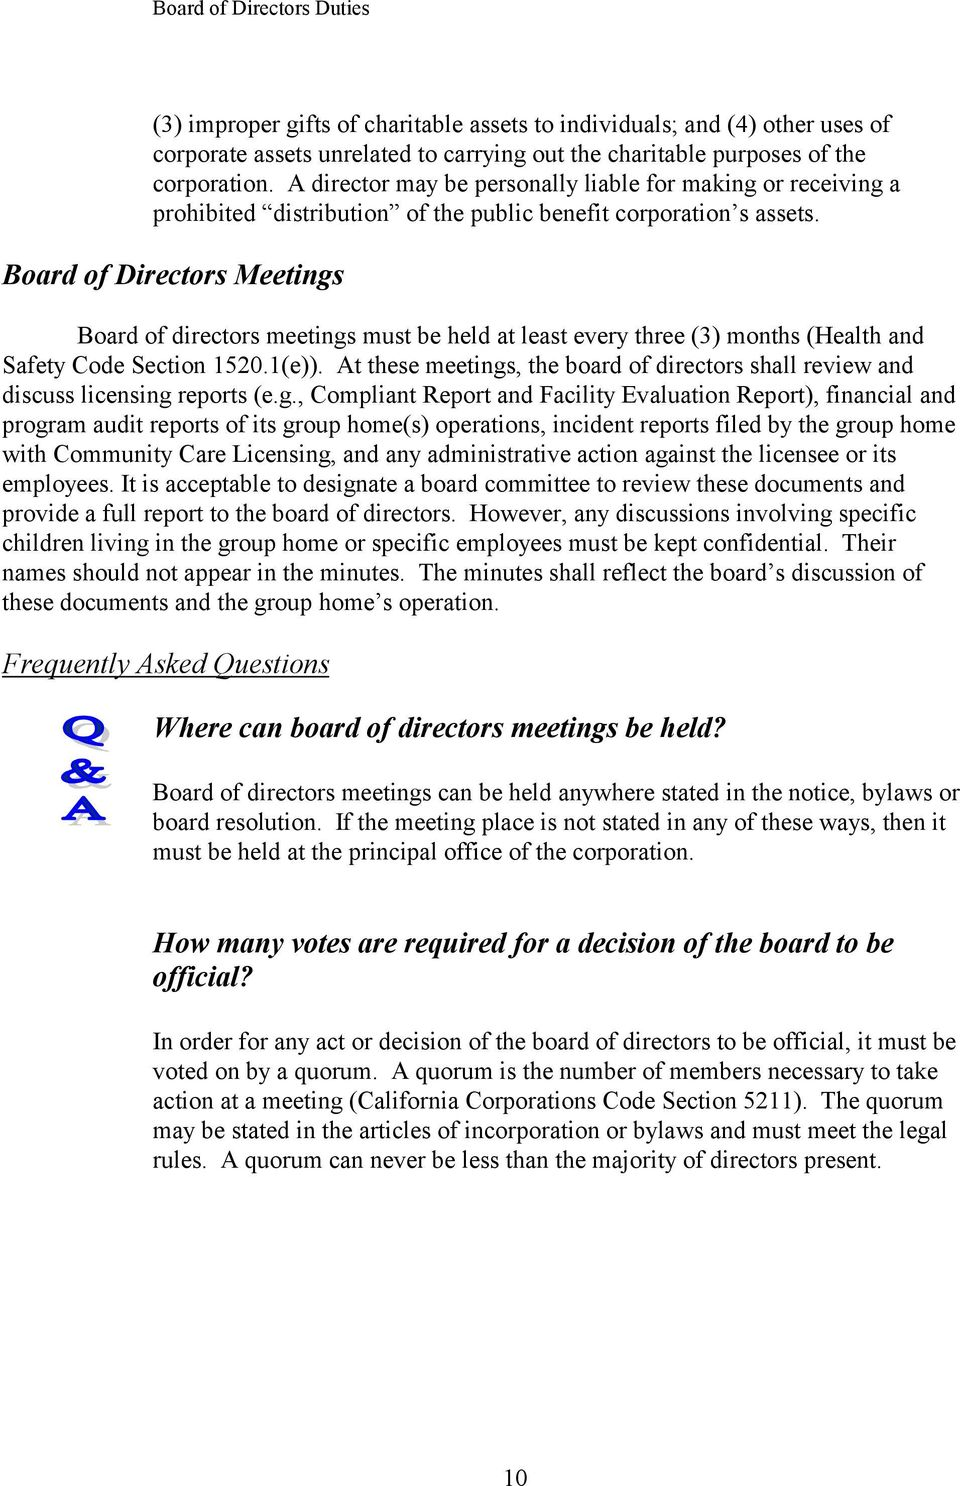 Board of Directors Meetings Board of directors meetings must be held at least every three (3) months (Health and Safety Code Section 1520.1(e)).